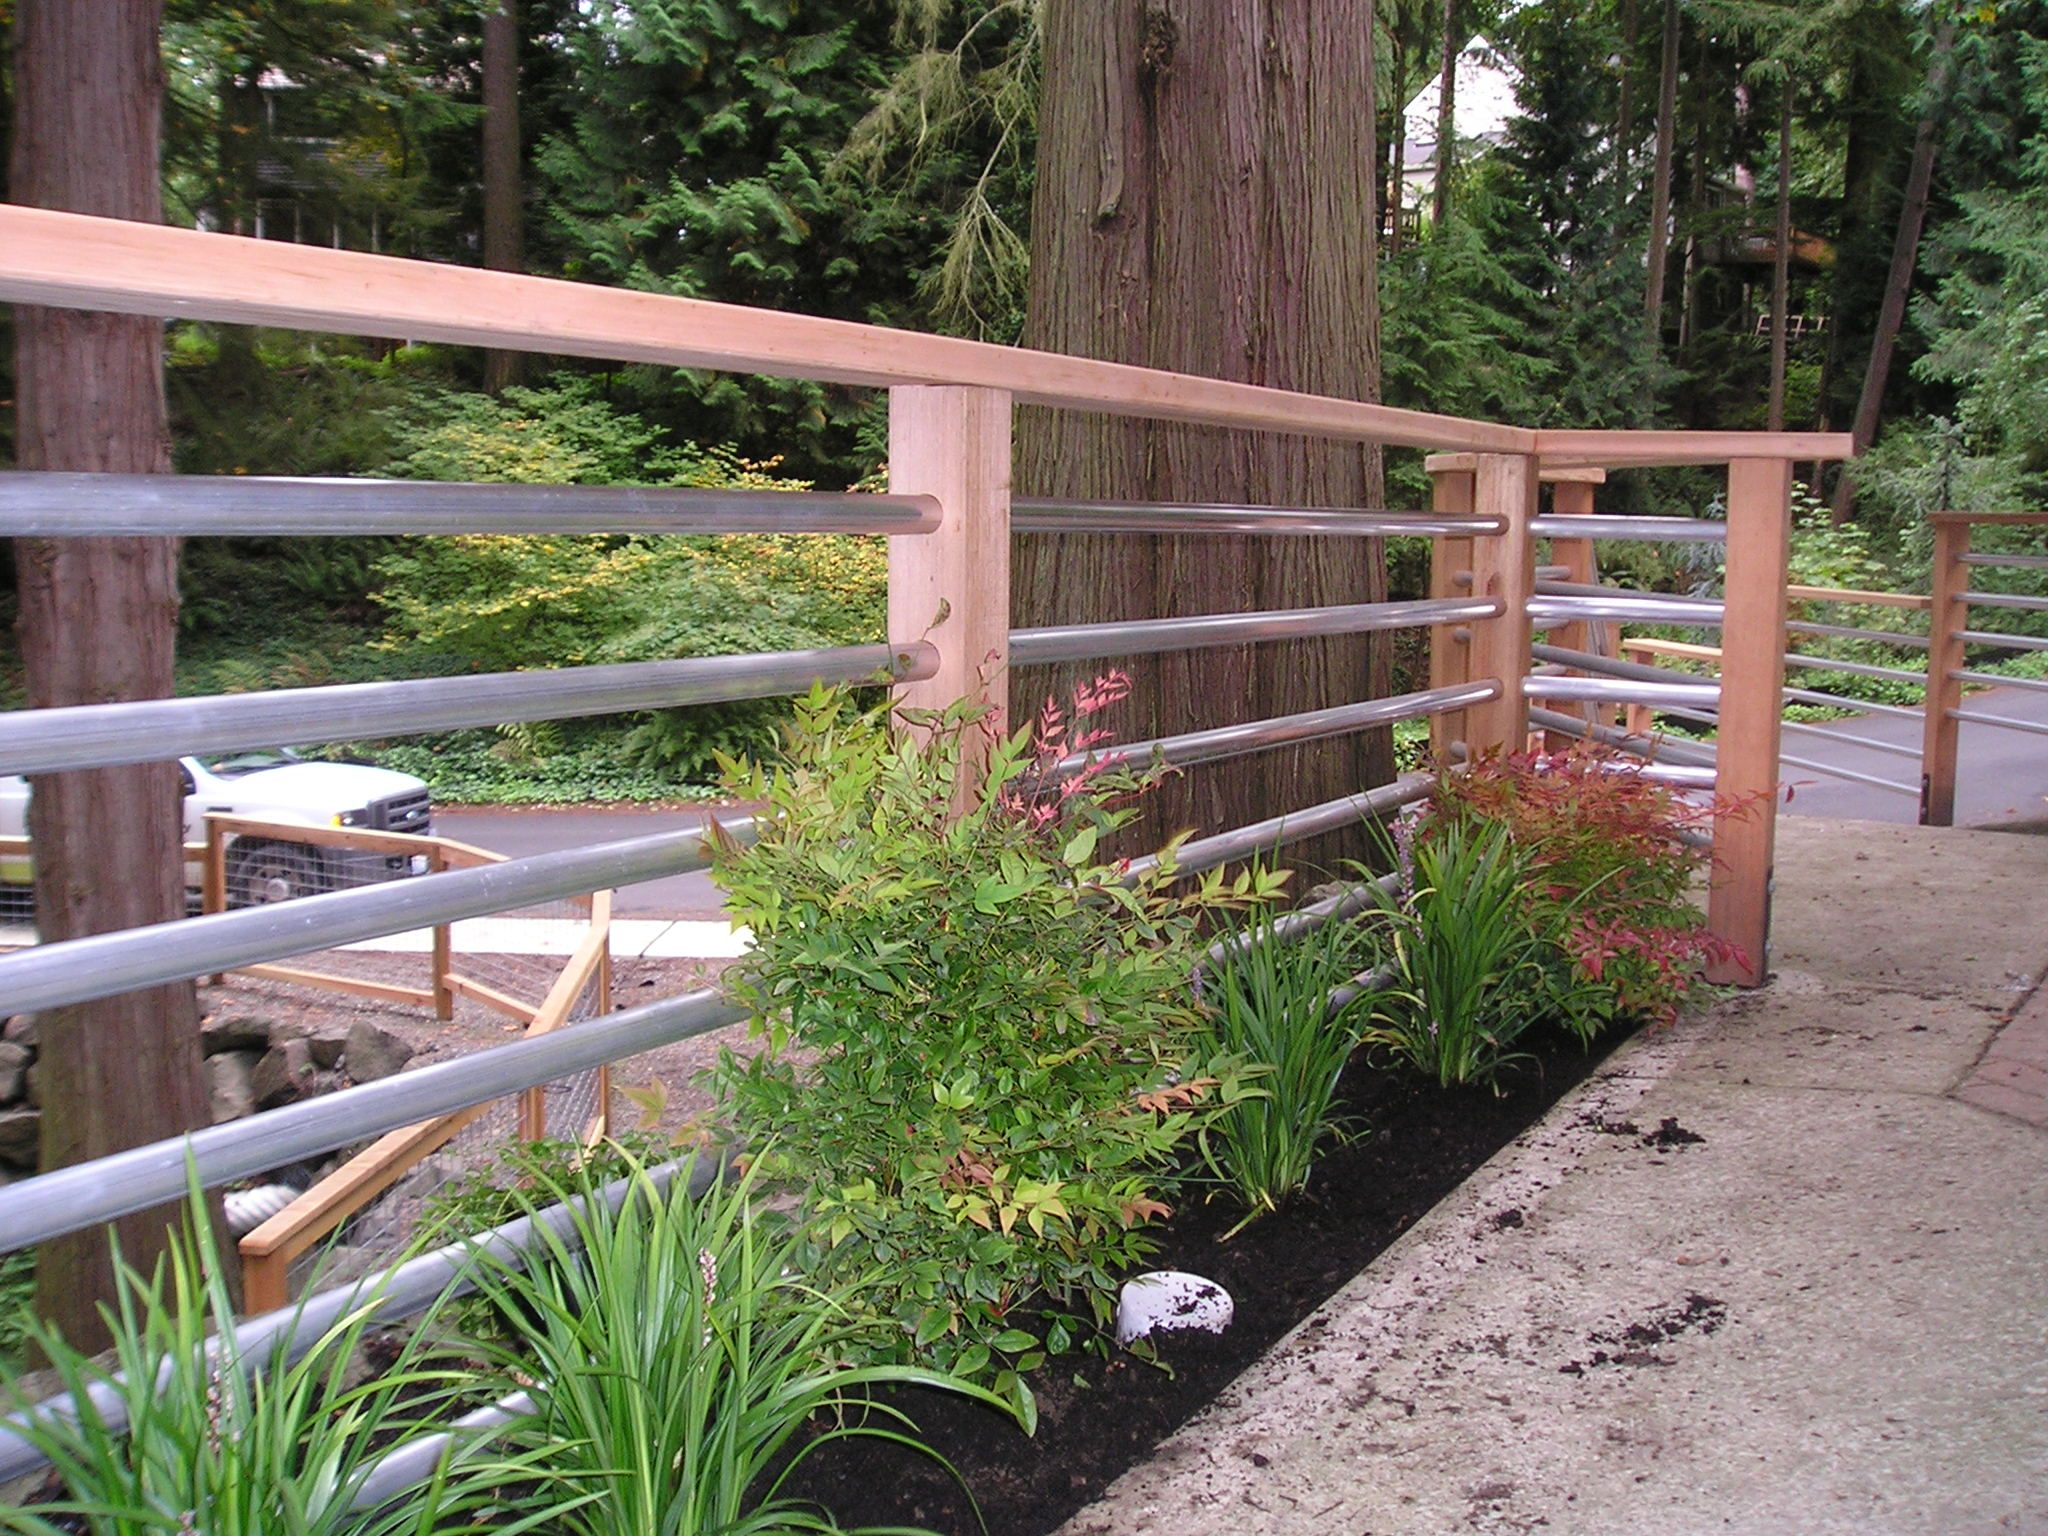 Best 25 railings for decks ideas on pinterest deck railings railing option to consider galvanized pipe for clean look and less expensive than cable rail baanklon Image collections